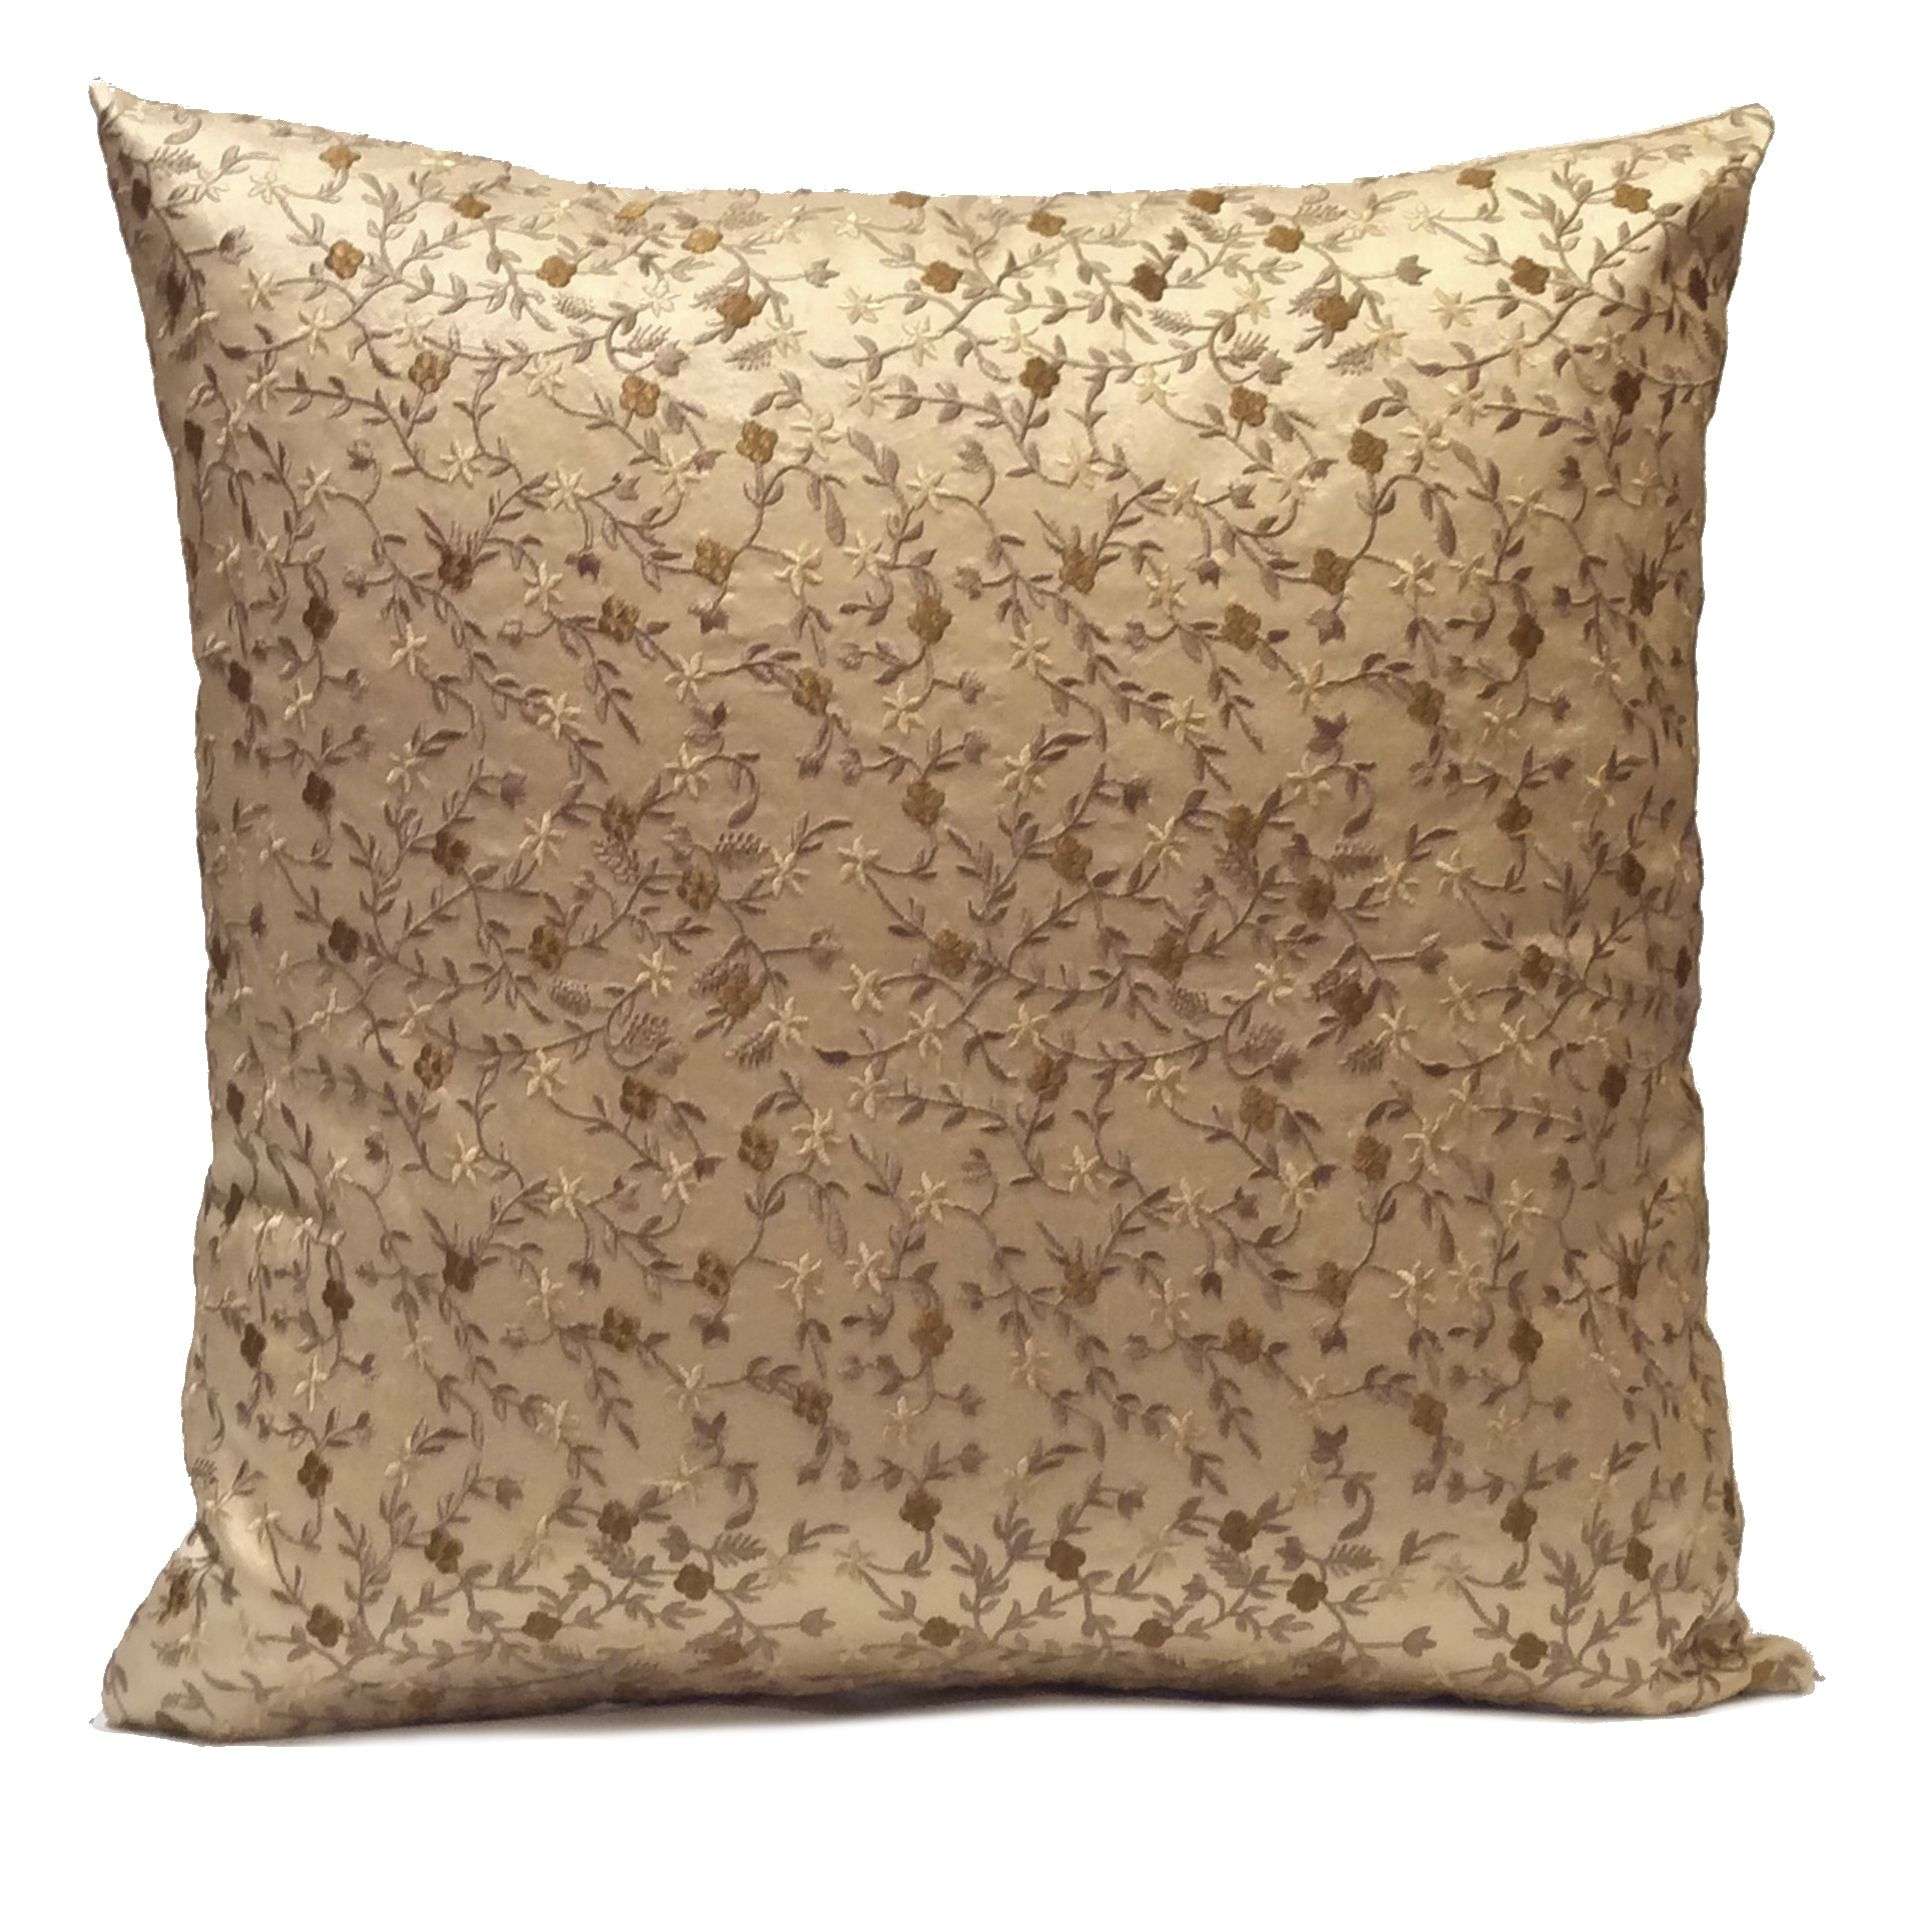 Cream color Silk Pillow Cover with Floral Pattern embroidery